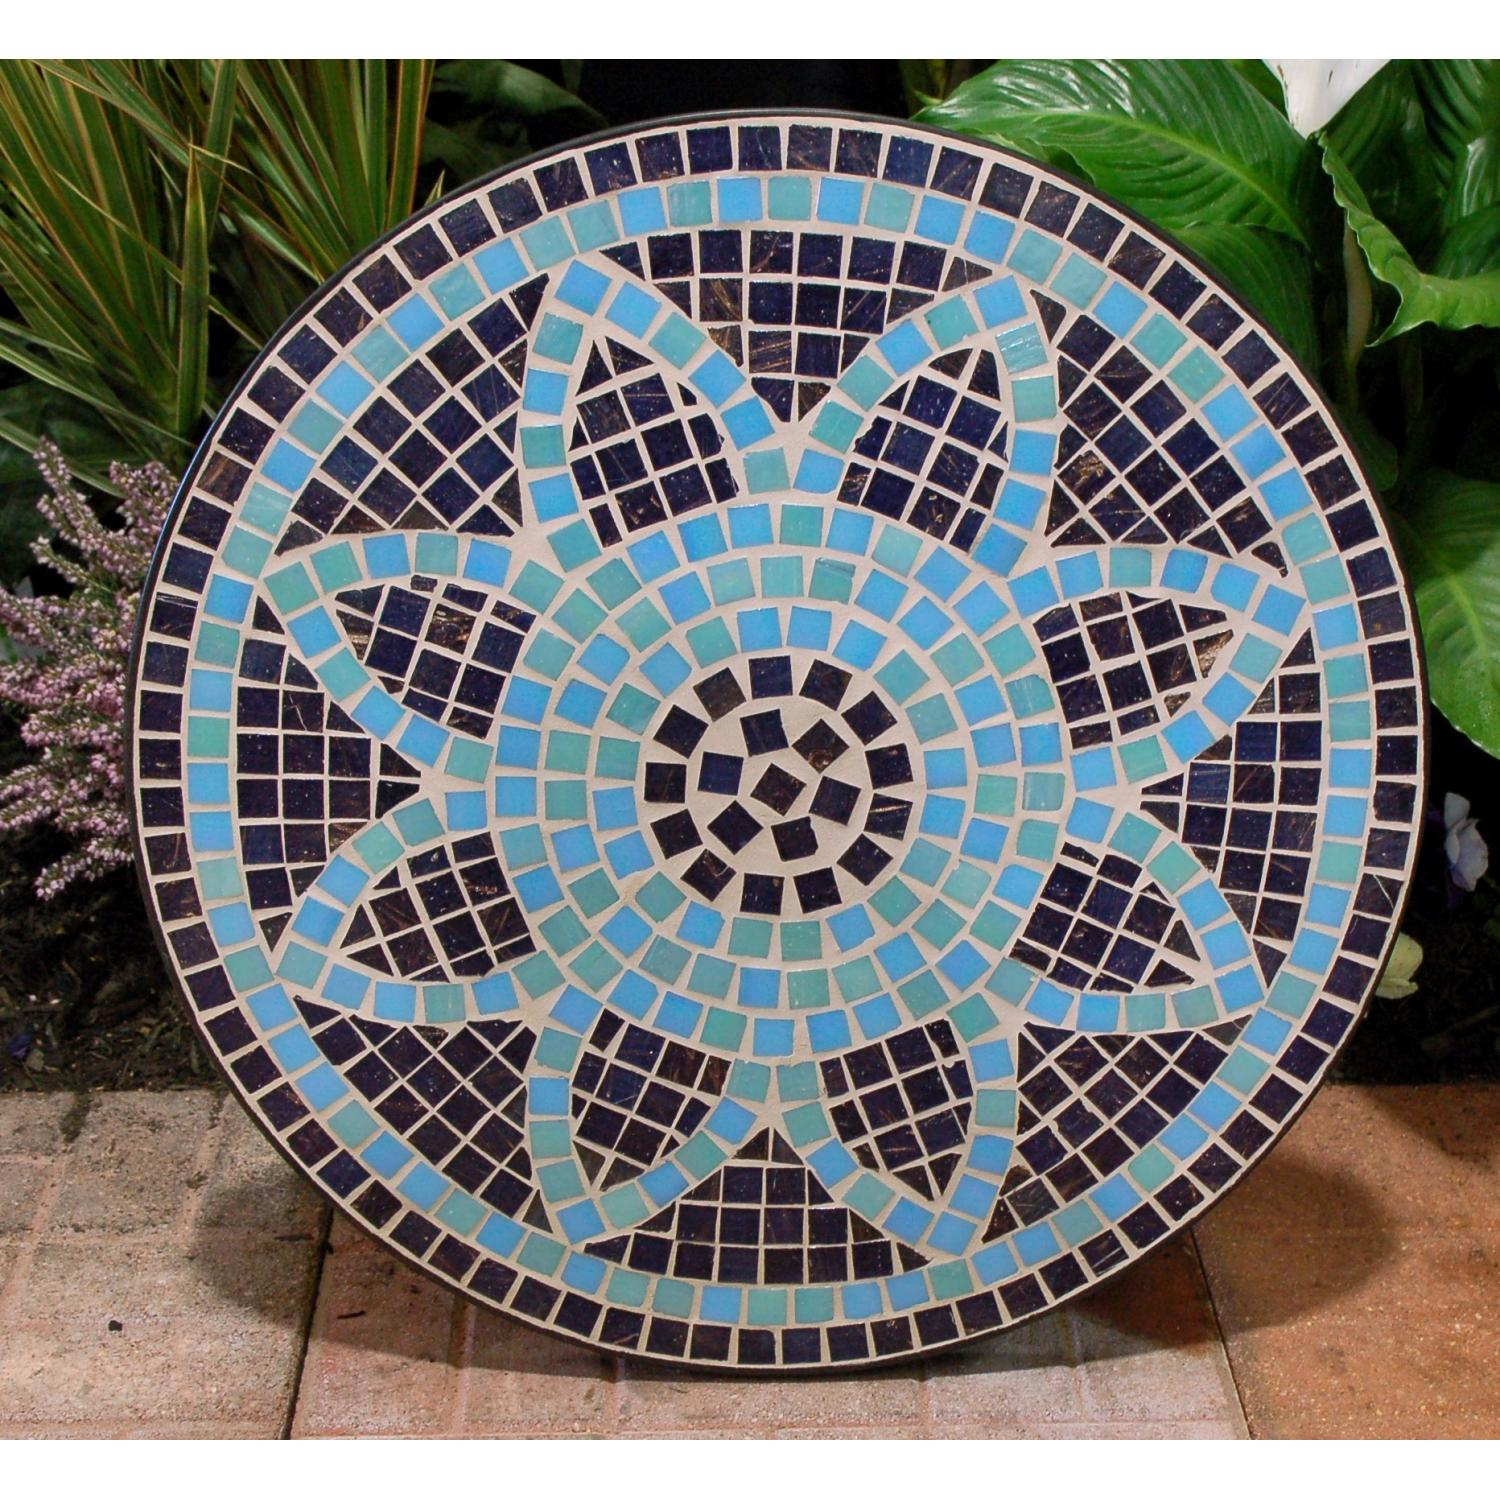 Charming Round Mosaic Bistro Table In Flower Motif For Patio Furniture Ideas